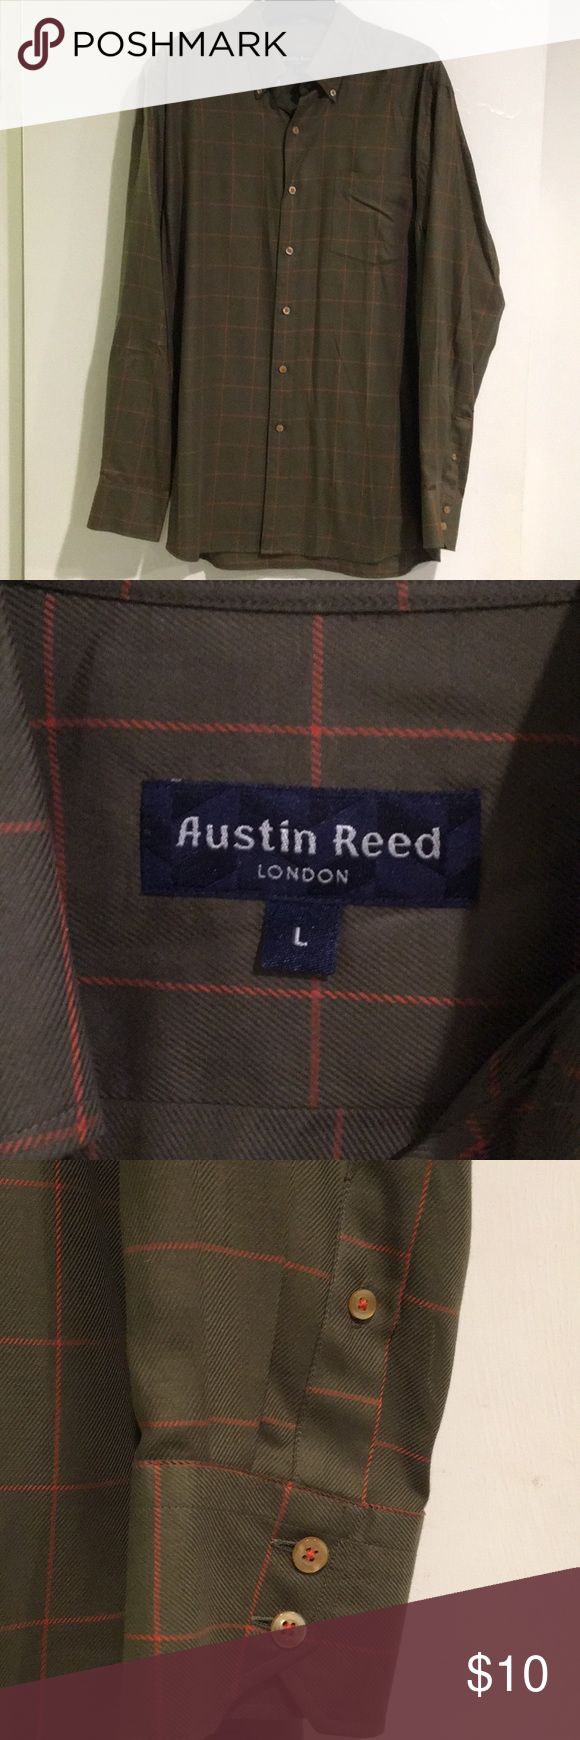 Austin Reed Men S Long Sleeve Button Down Shirt Austin Reed Men S Long Sleeve Button Down Shirt English Fit Dark Gr Button Down Shirt Austin Reed Long Sleeve